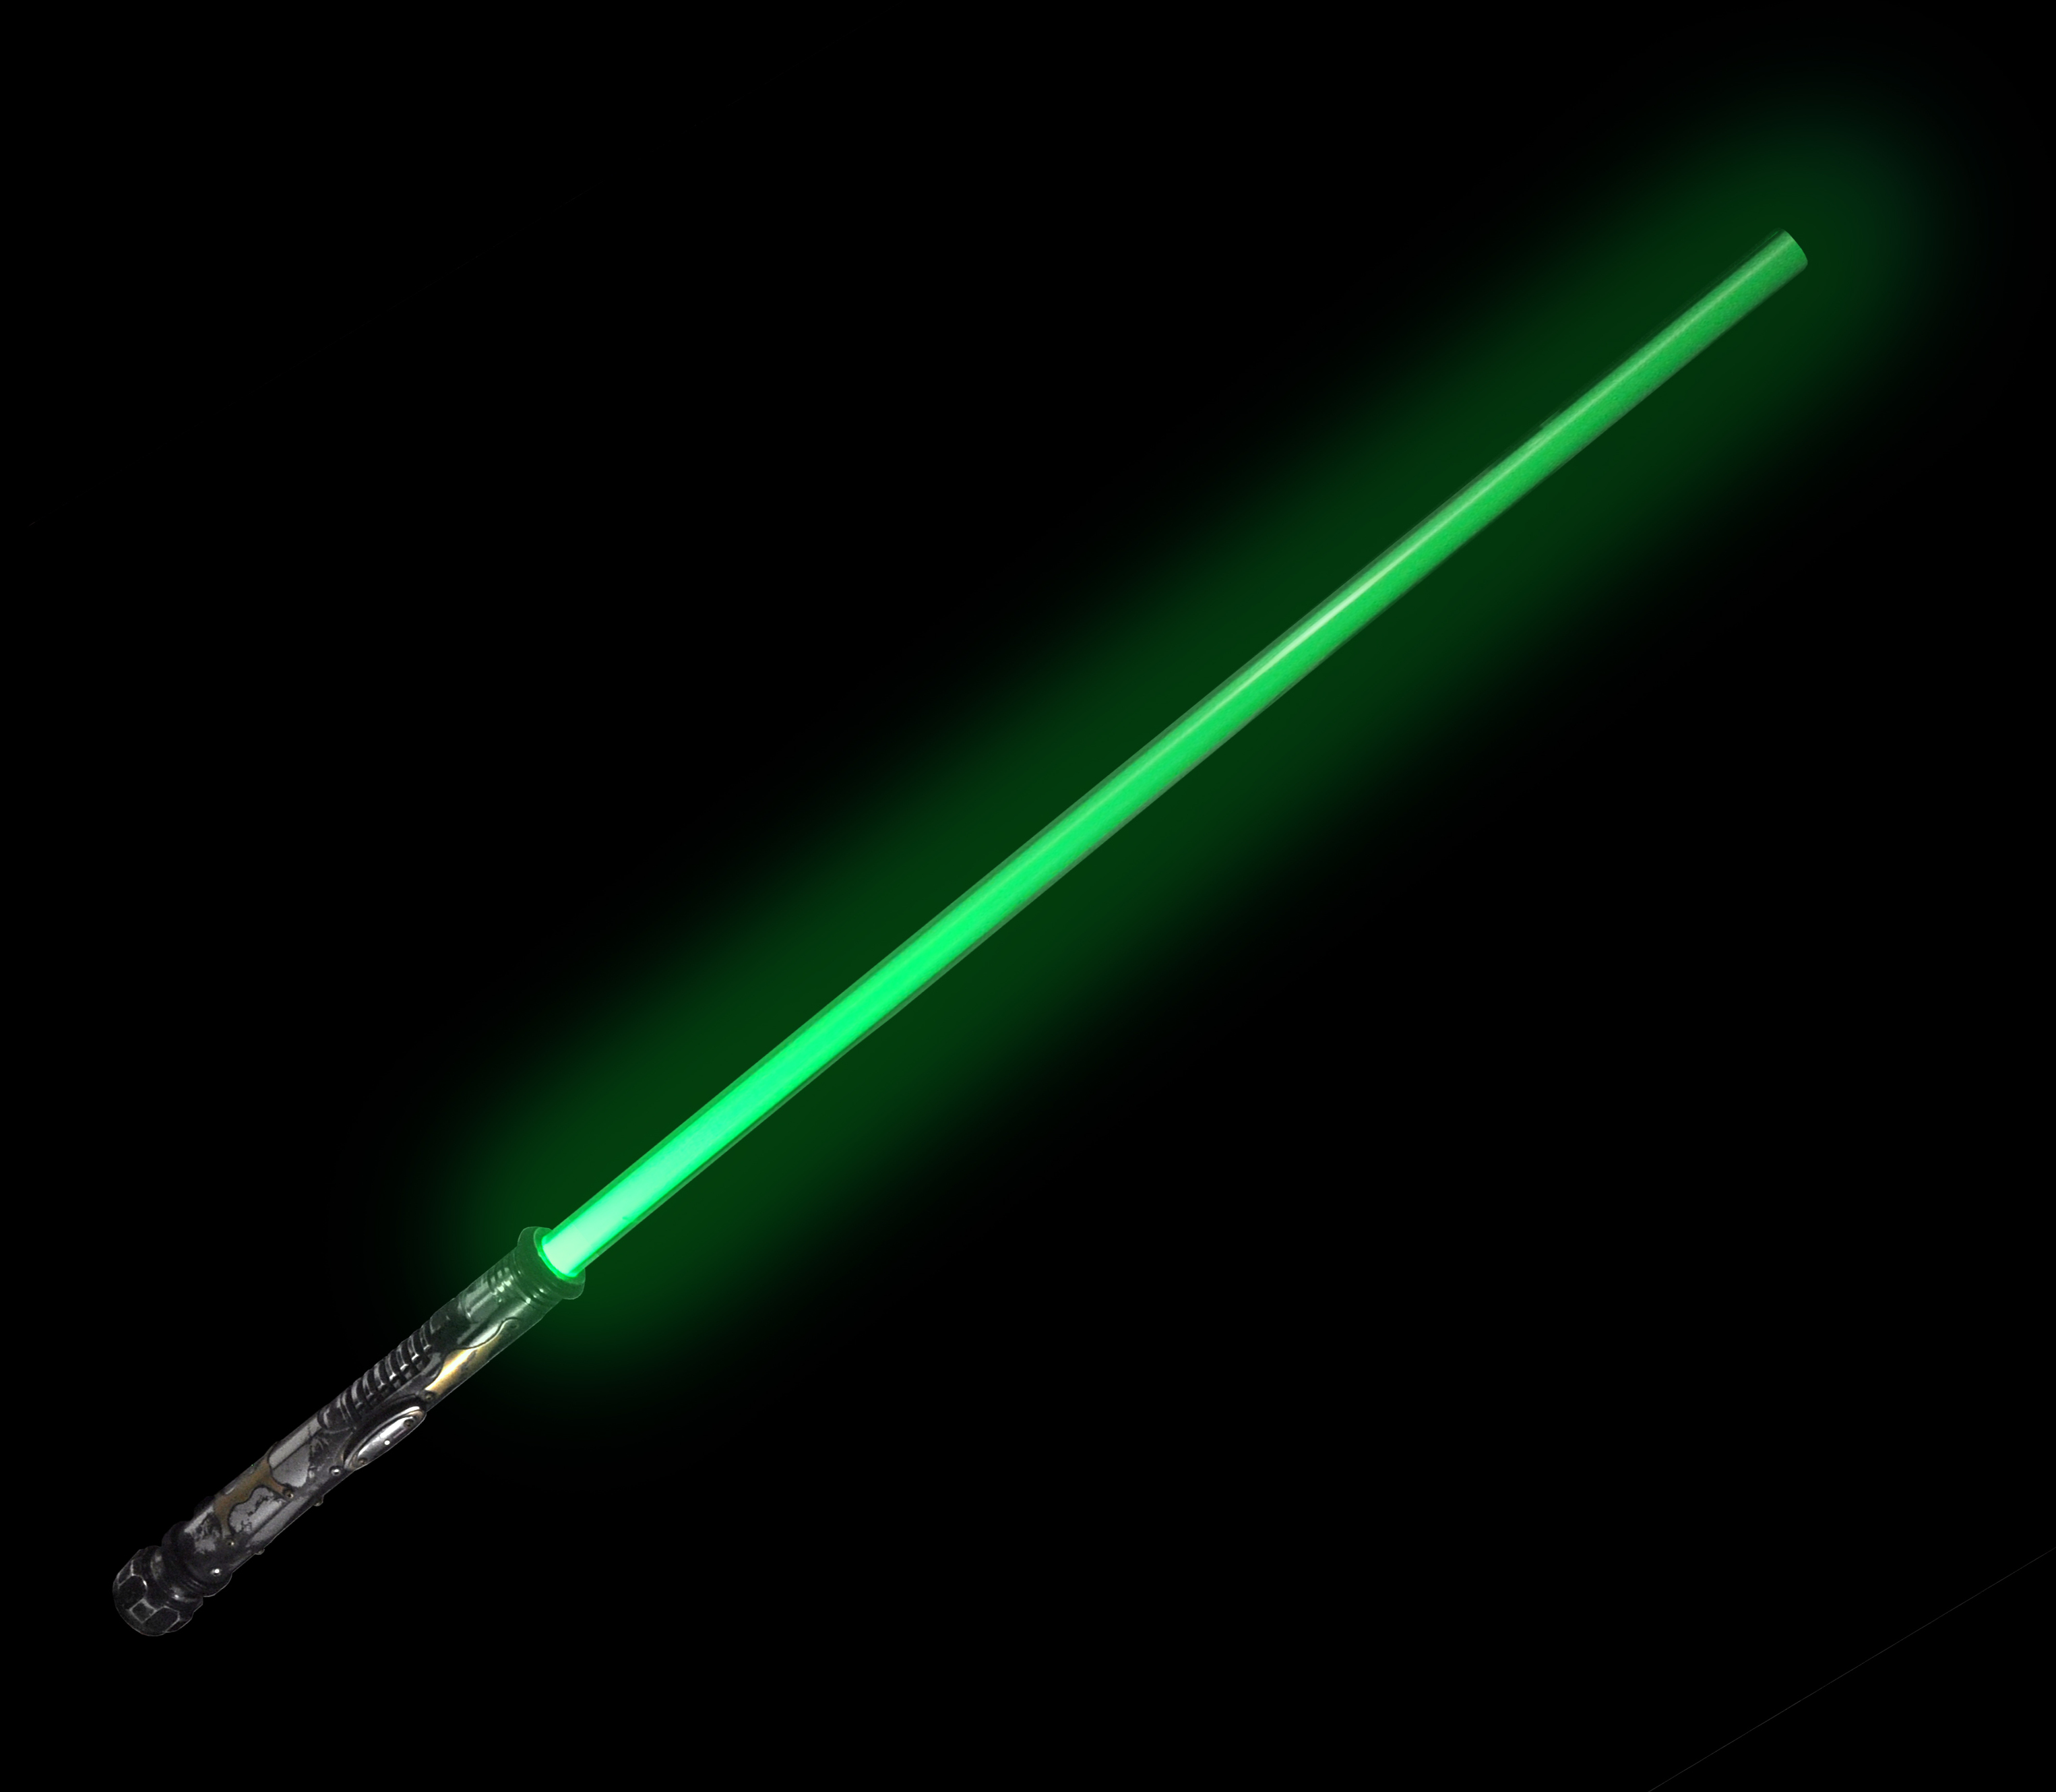 How to Make Your Own Lightsaber - Science Friday